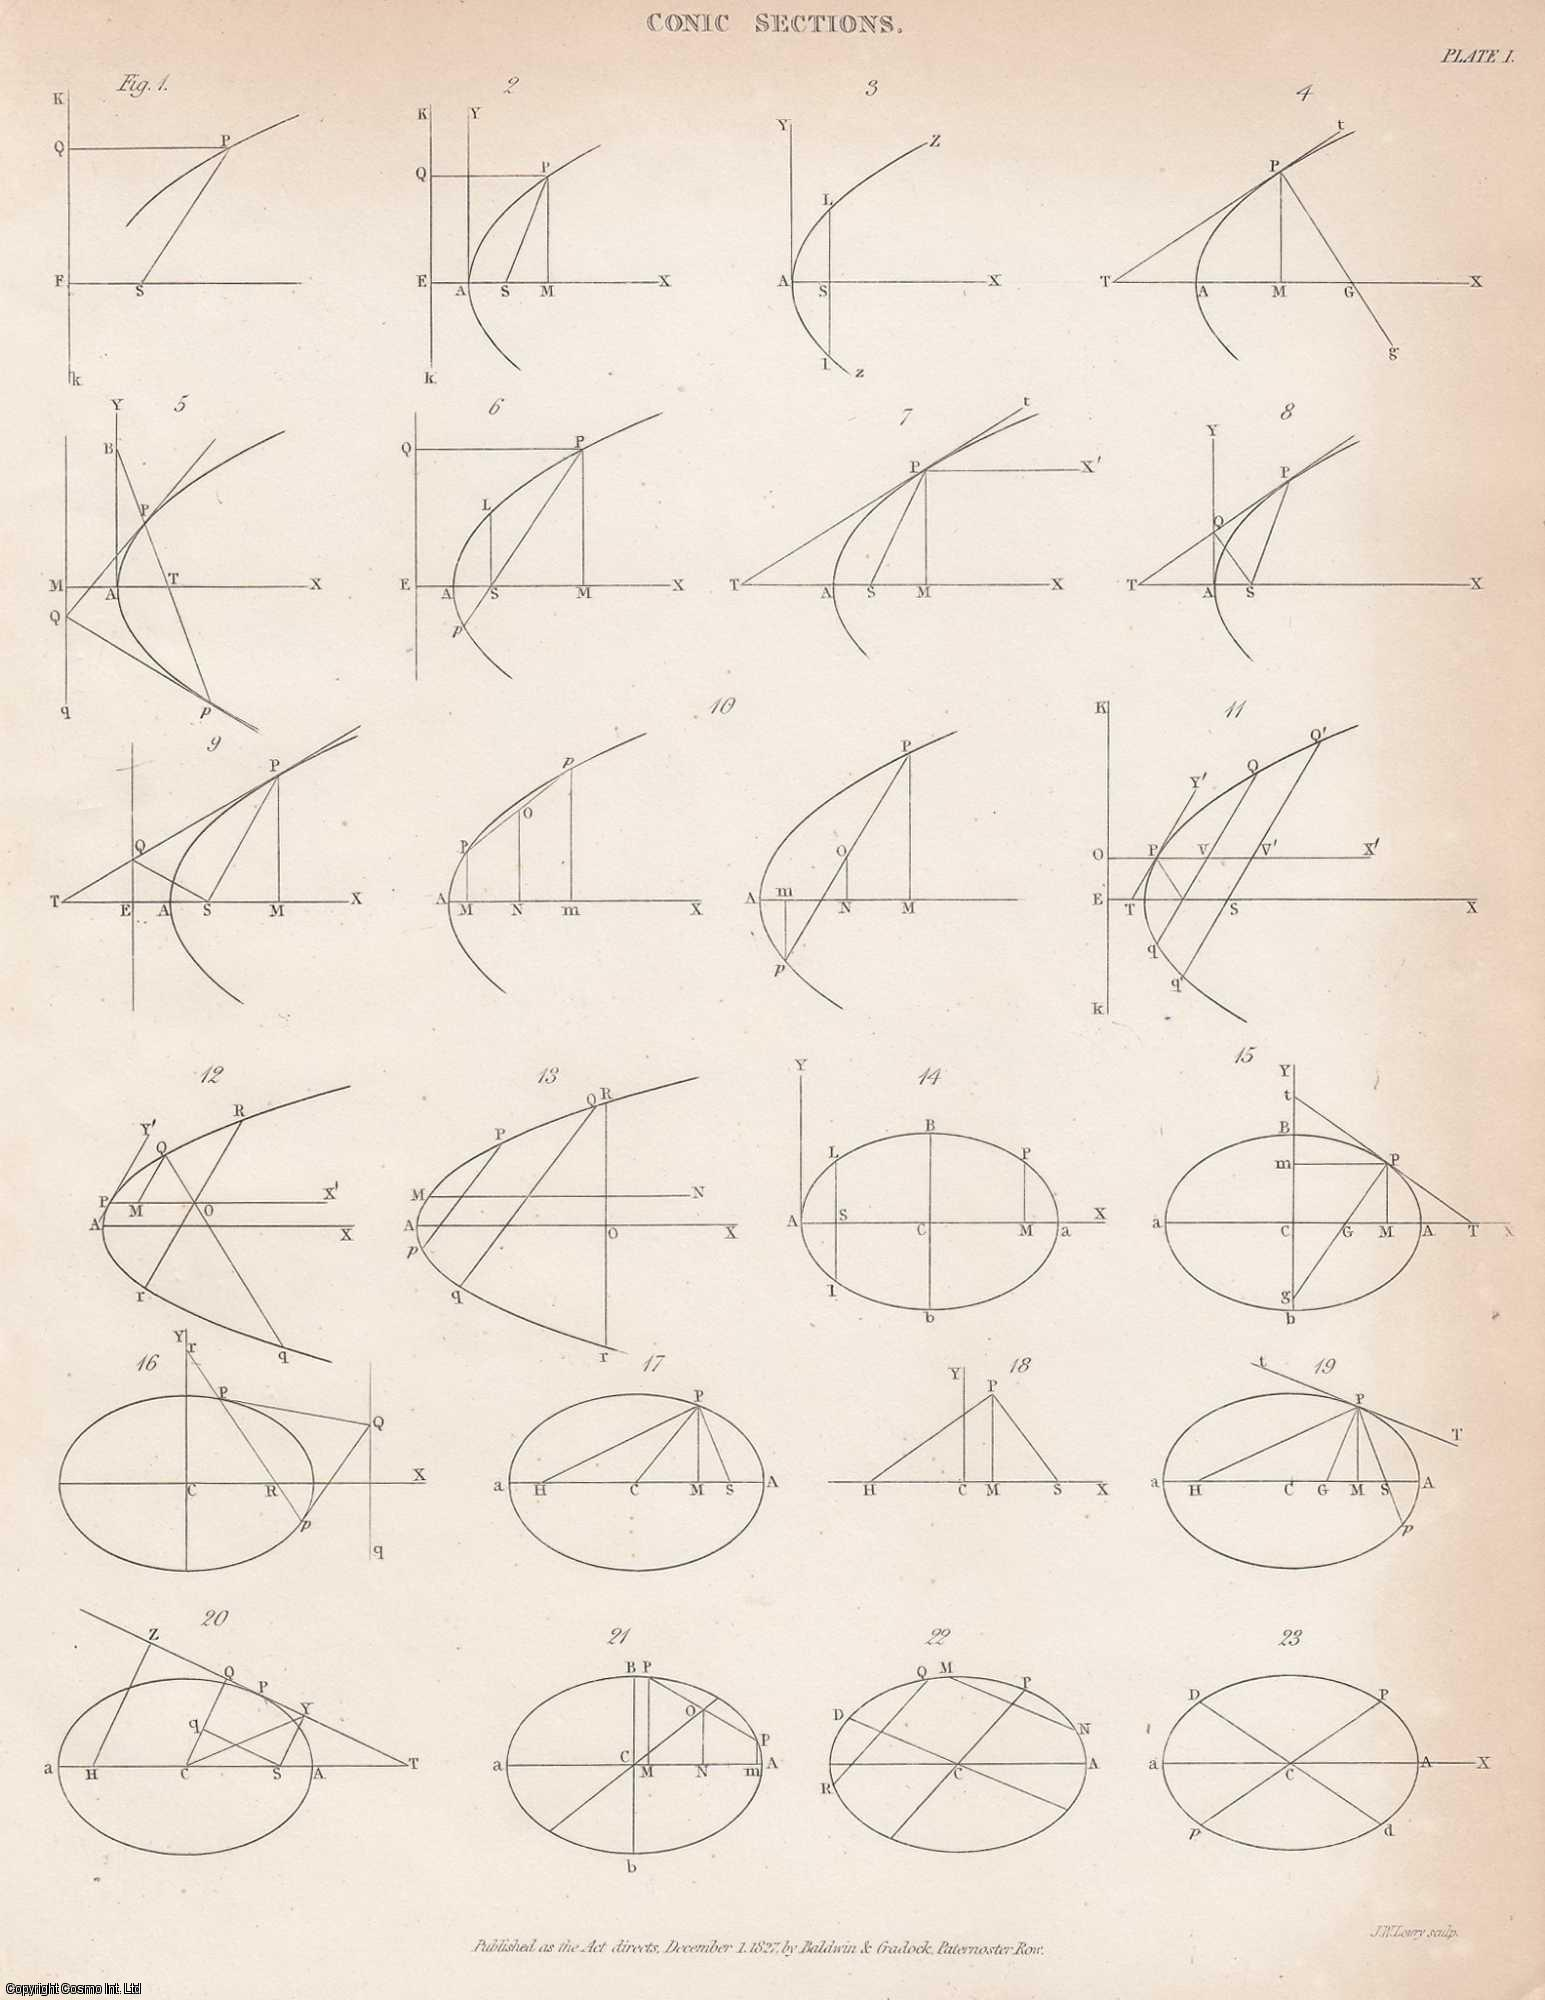 Conic Sections.  An Article From the Encyclopaedia Metropolitana., Rev. Henry Parr Hamilton.